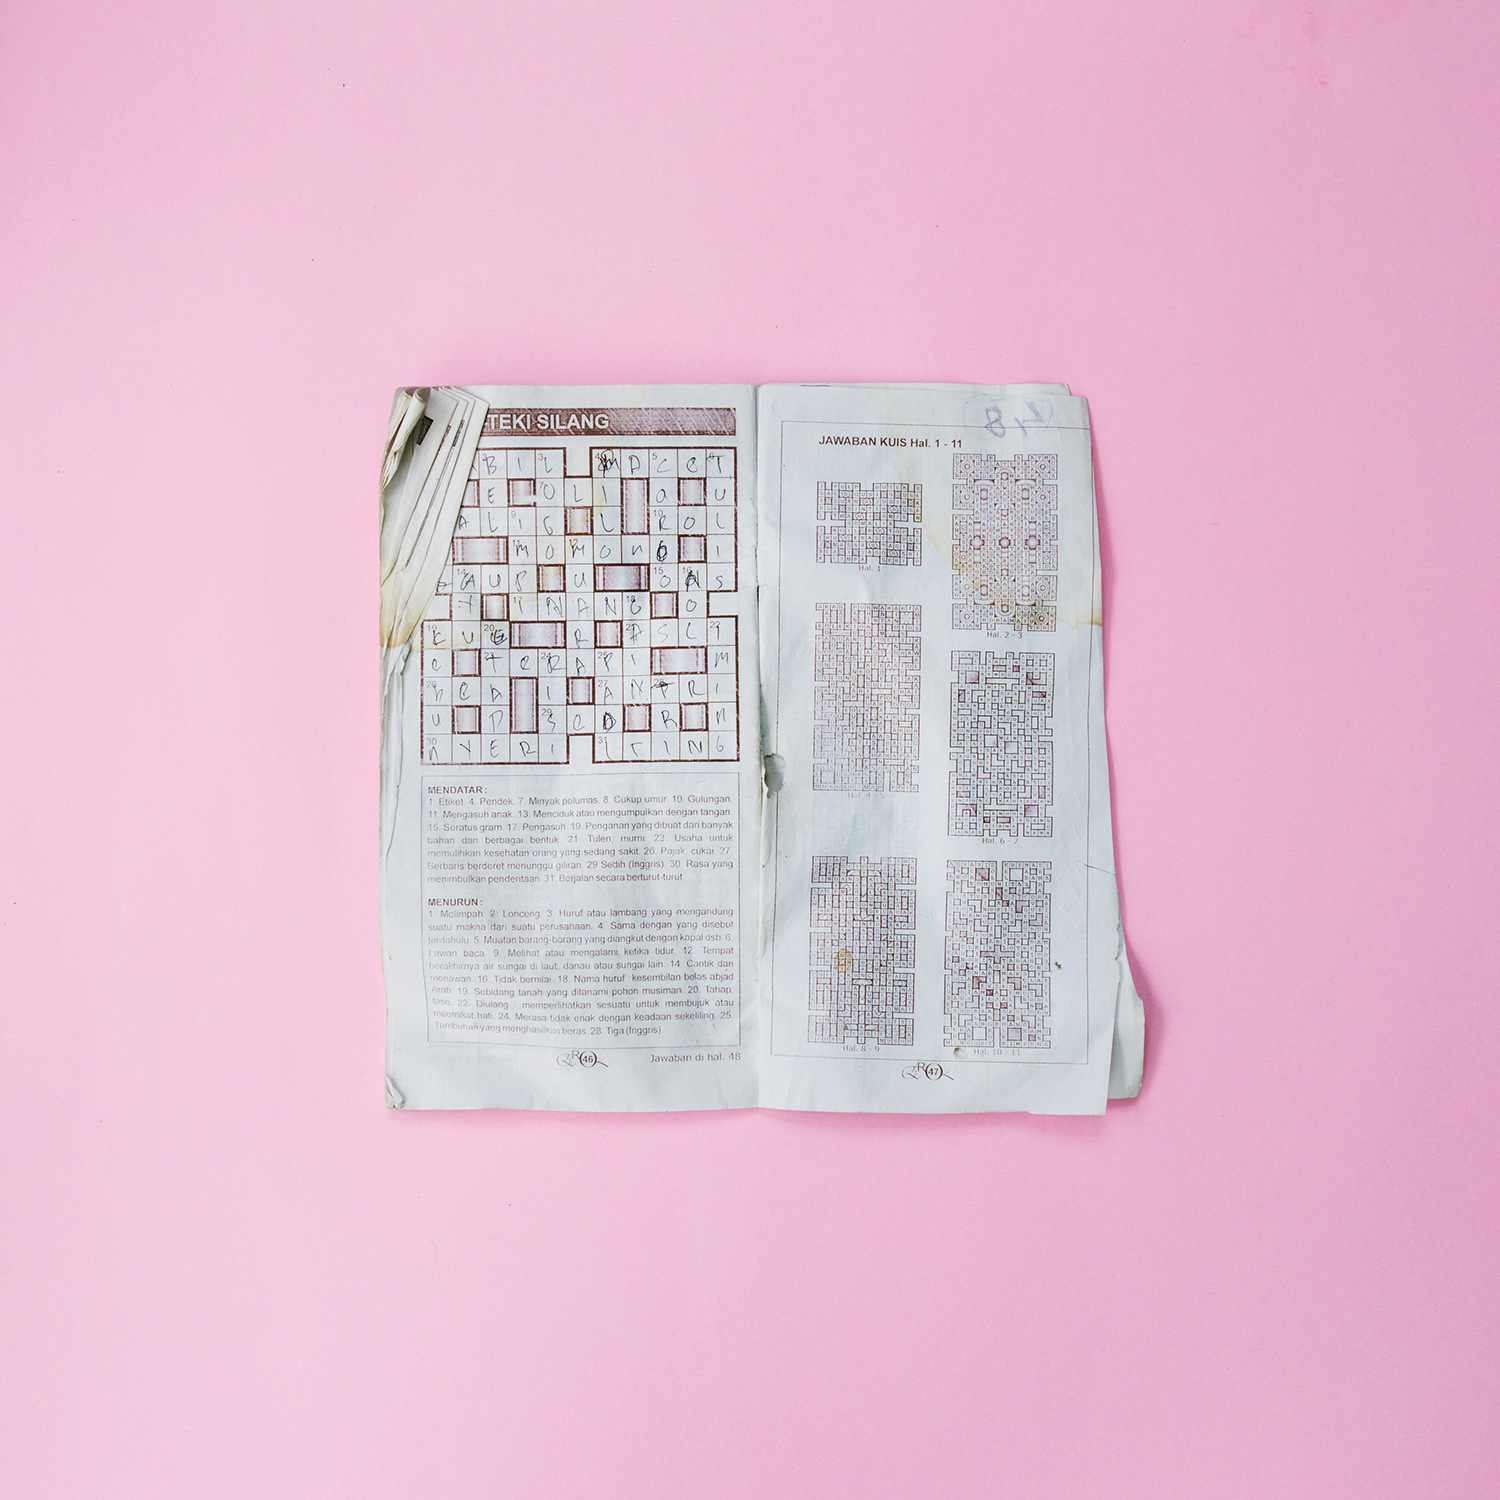 A crossword puzzle. Possibly used as a cure for boredom while the sex workers waiting for the clients in their prison-like rooms.